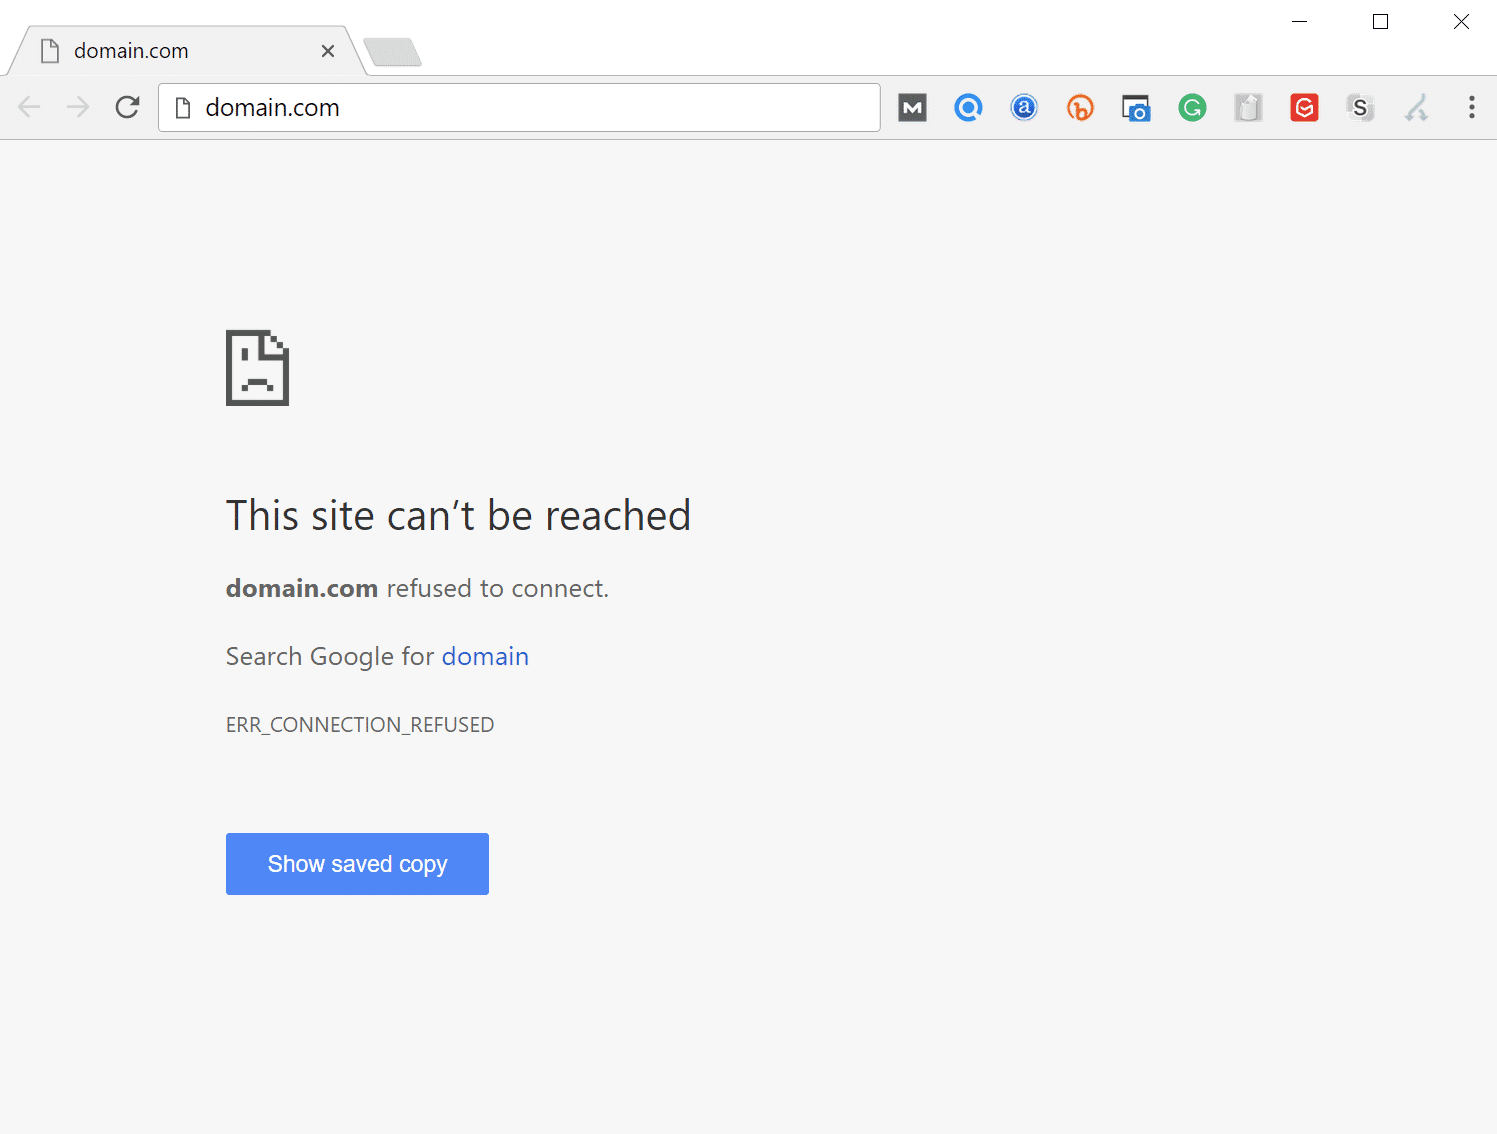 ERR_CONNECTION_REFUSED error in Google Chrome